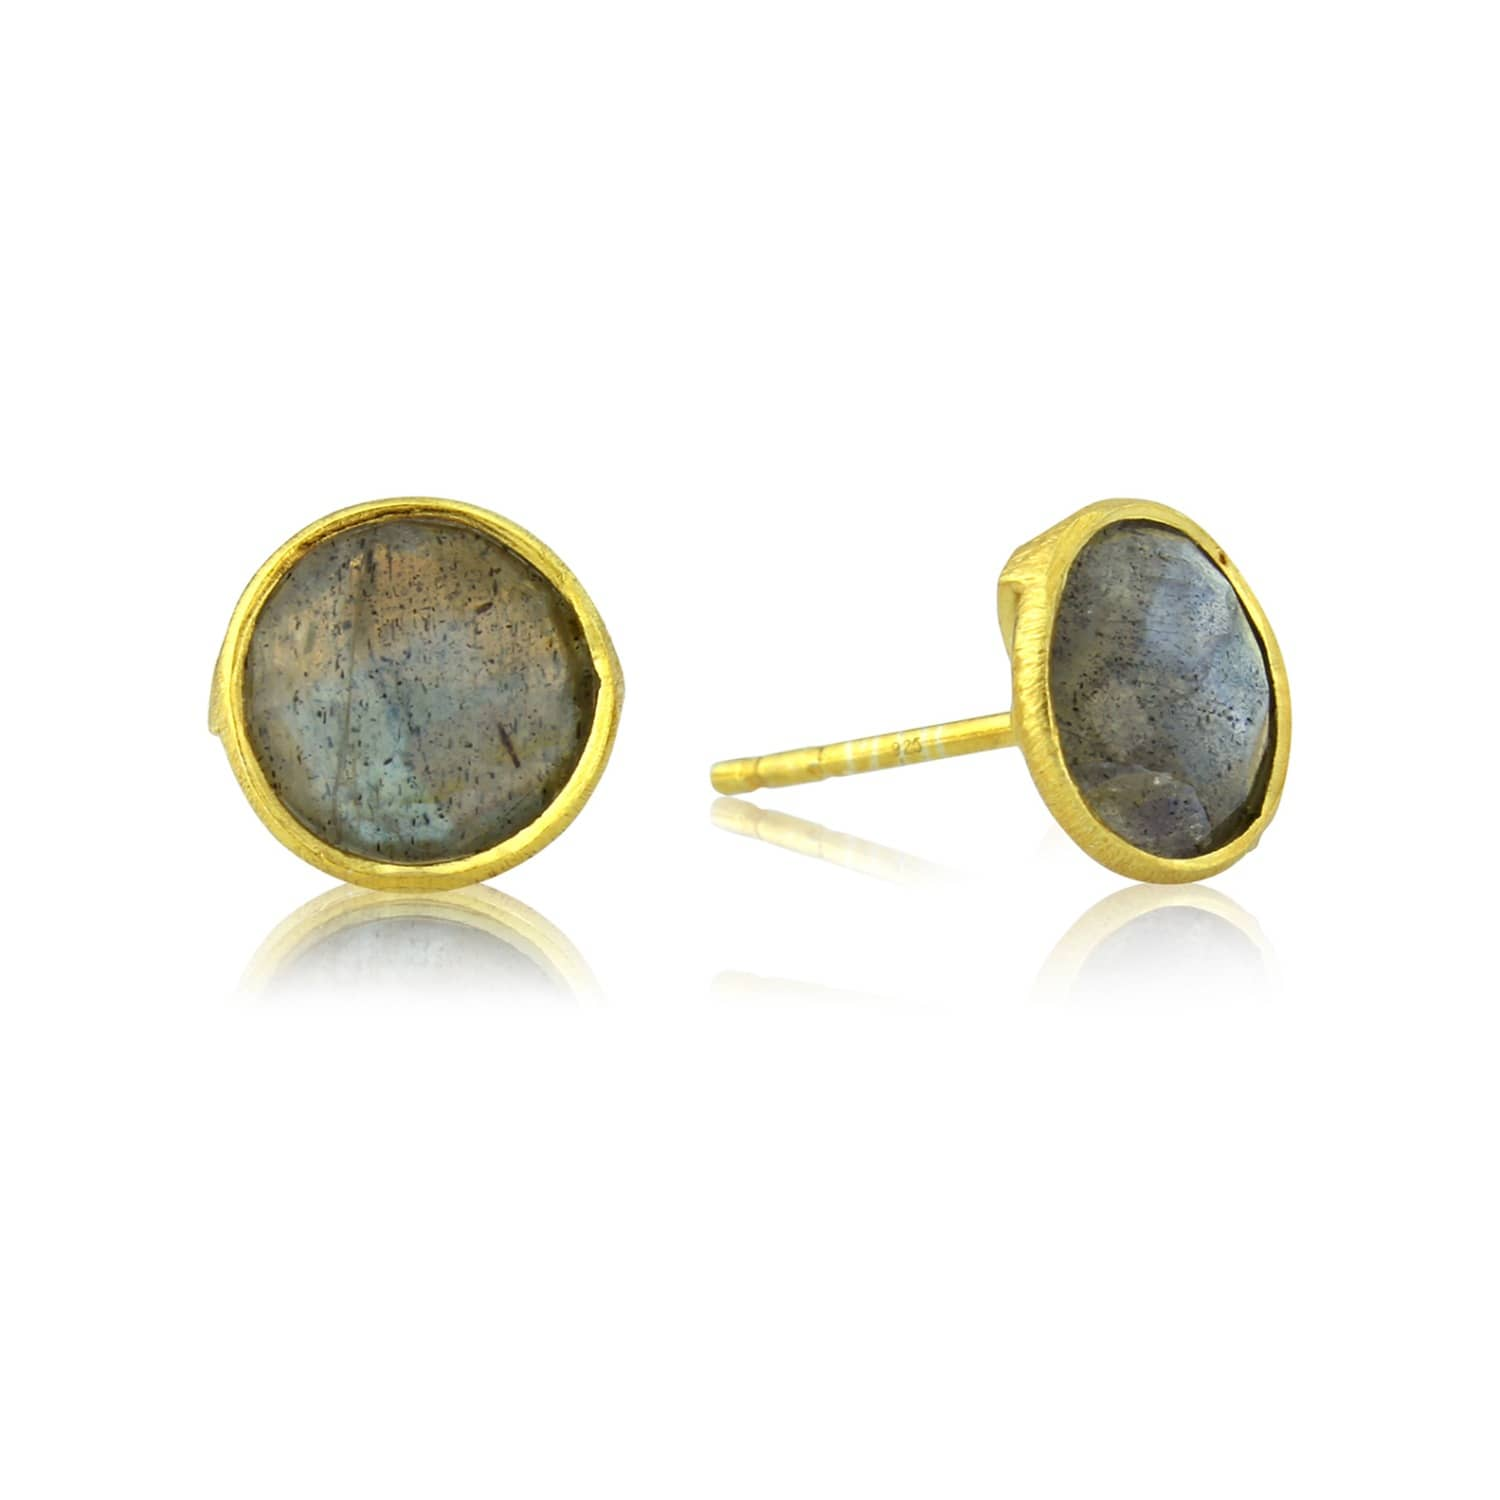 guide labradorite julie transformational product img earrings mcafee